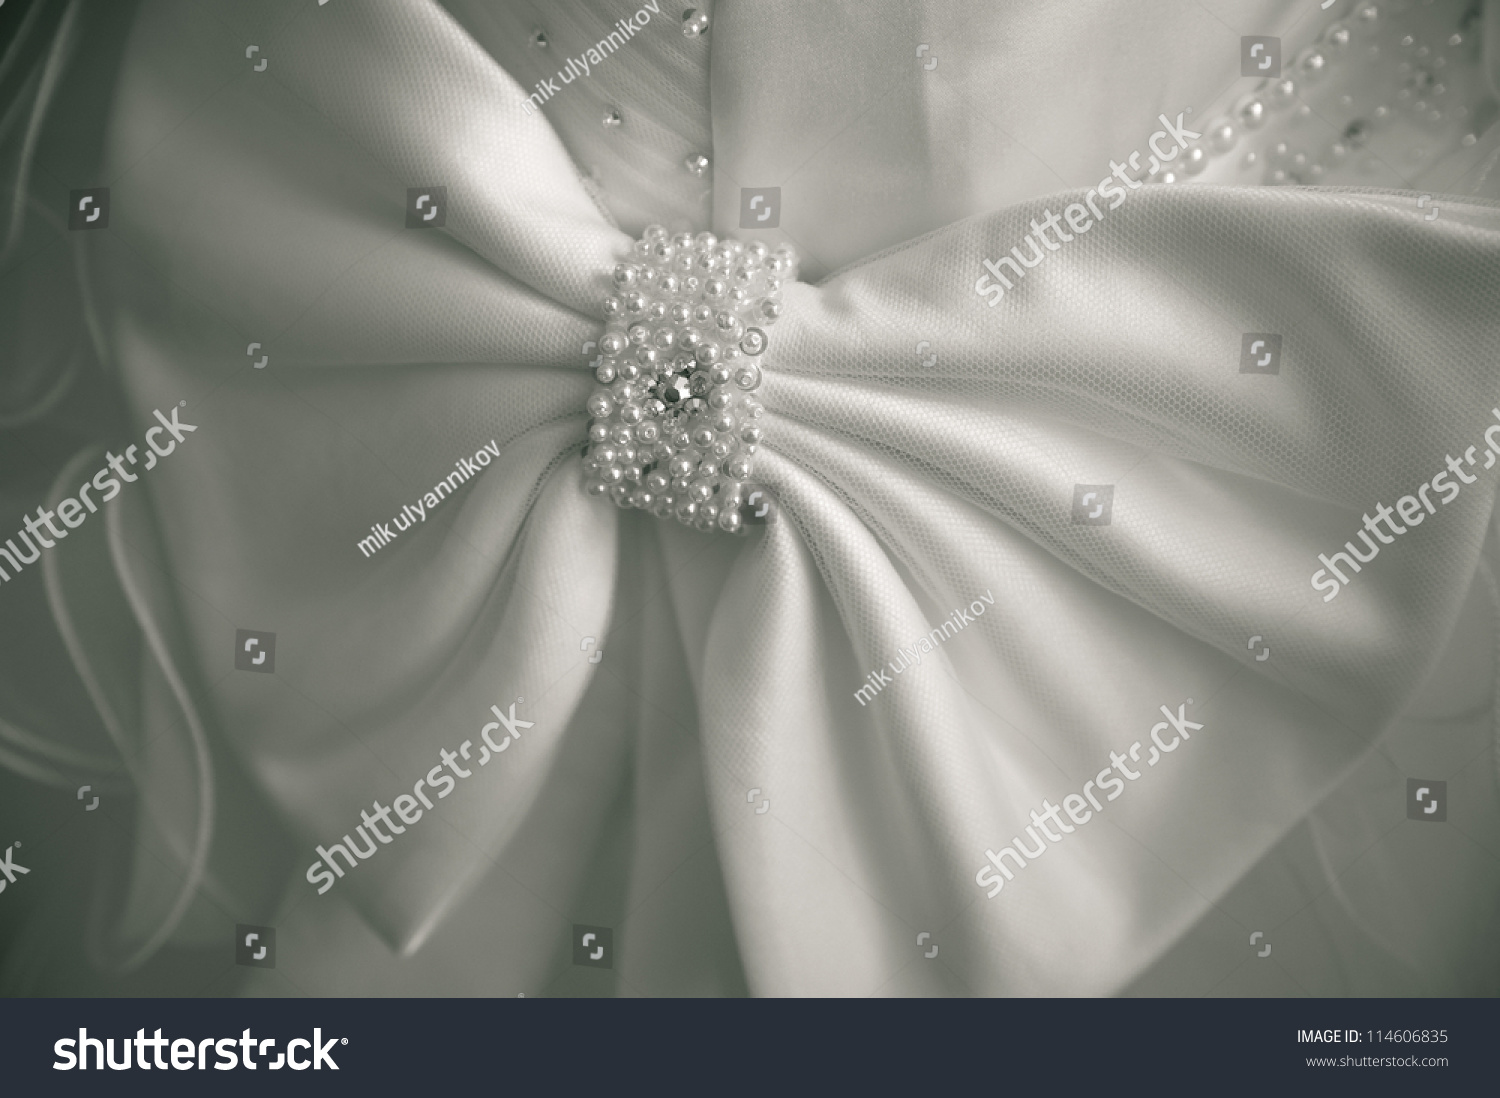 Big Bow On A Wedding Dress. Simple Background. Decorate